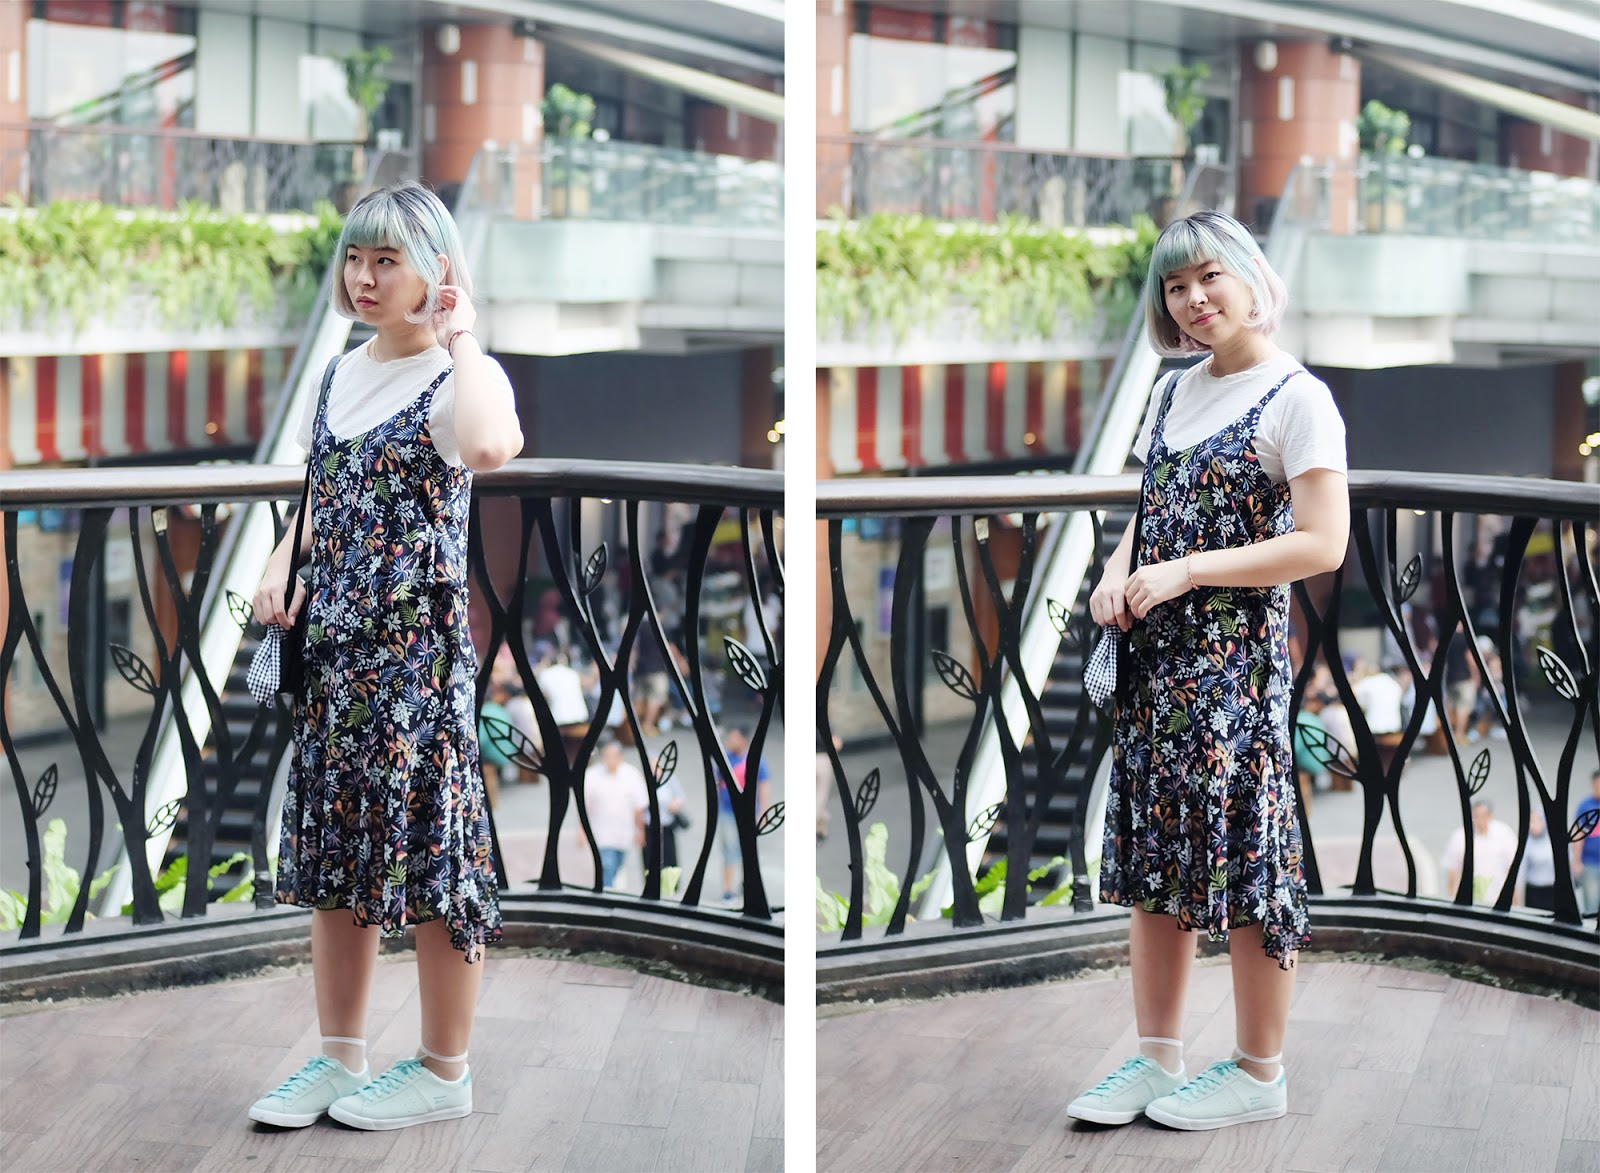 How to Dress Like A Korean Outfit | www.bigdreamerblog.com